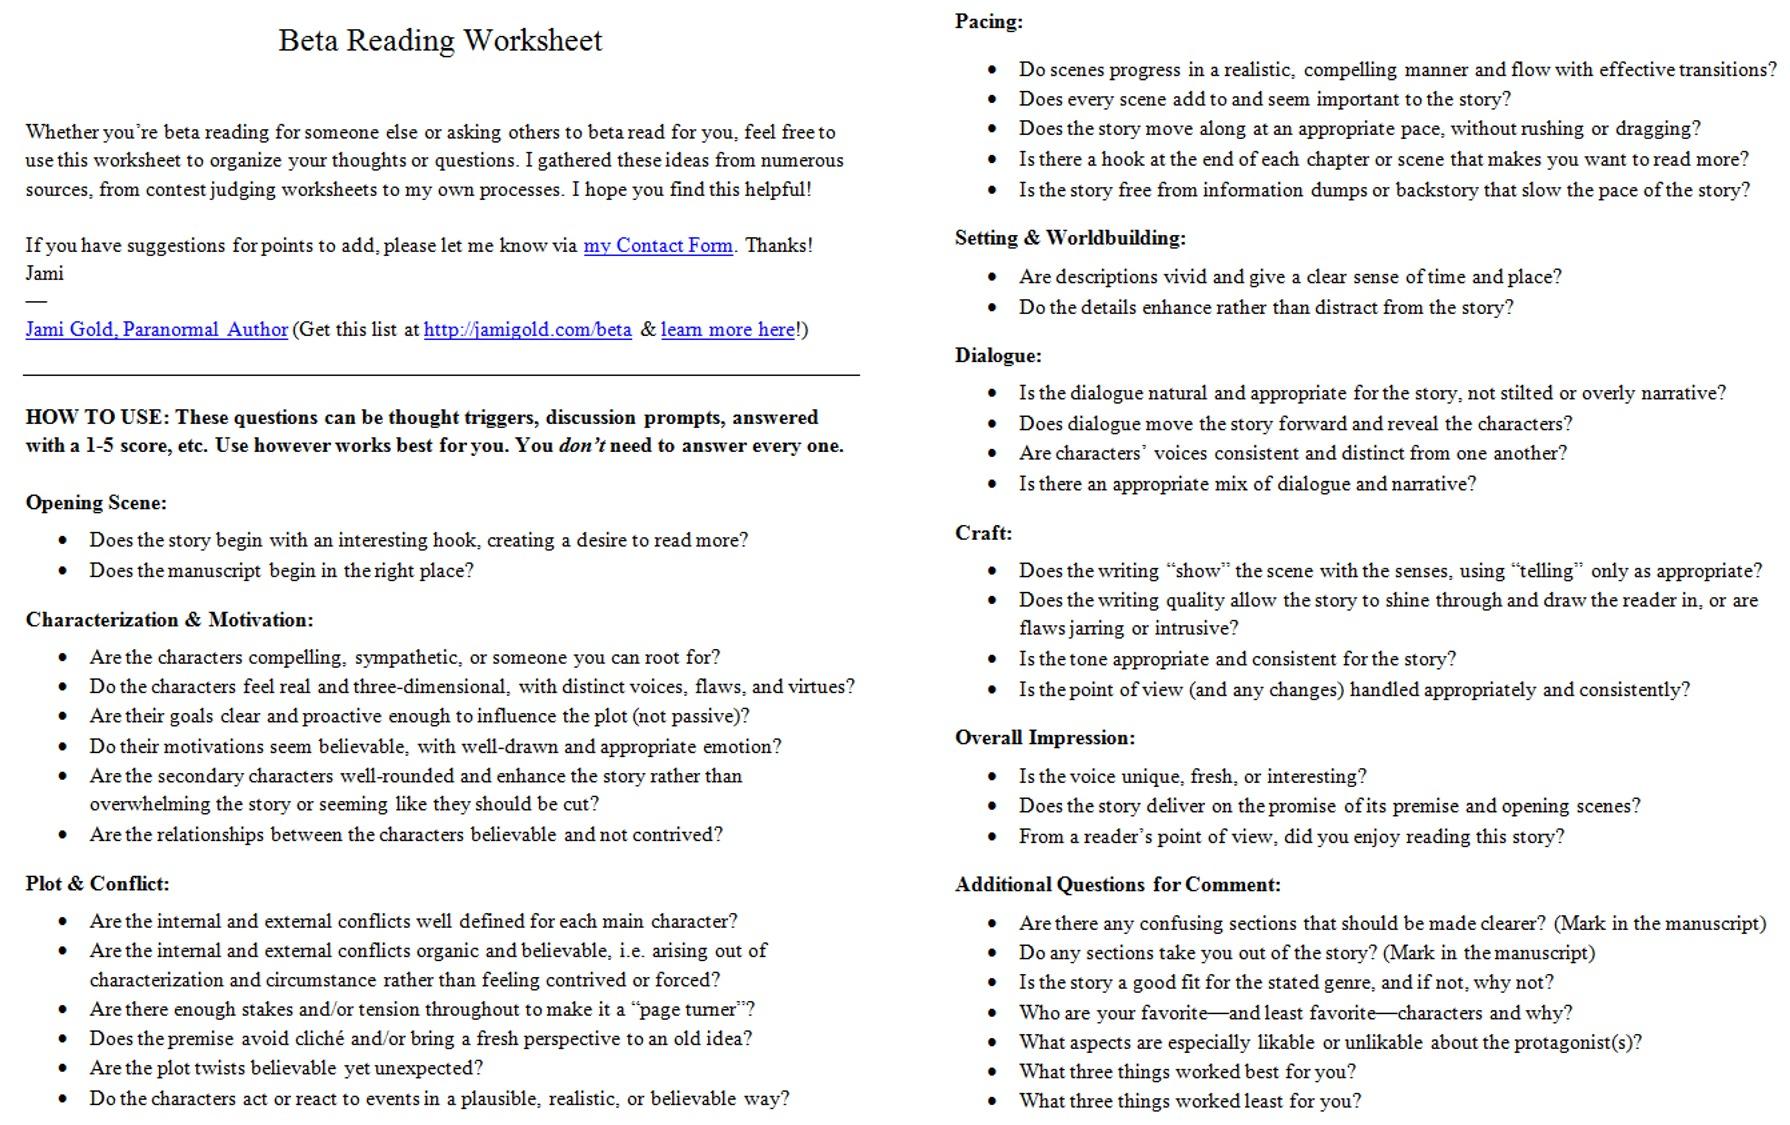 Weirdmailus  Remarkable Worksheets For Writers  Jami Gold Paranormal Author With Inspiring Screen Shot Of The Twopage Beta Reading Worksheet With Breathtaking Telling The Time Worksheets Year  Also Kindergarten Letter Worksheets Free In Addition Ramadan Worksheets And Fraction Circle Worksheets As Well As Writing Practice Worksheets For First Grade Additionally Algebra Pdf Worksheets From Jamigoldcom With Weirdmailus  Inspiring Worksheets For Writers  Jami Gold Paranormal Author With Breathtaking Screen Shot Of The Twopage Beta Reading Worksheet And Remarkable Telling The Time Worksheets Year  Also Kindergarten Letter Worksheets Free In Addition Ramadan Worksheets From Jamigoldcom